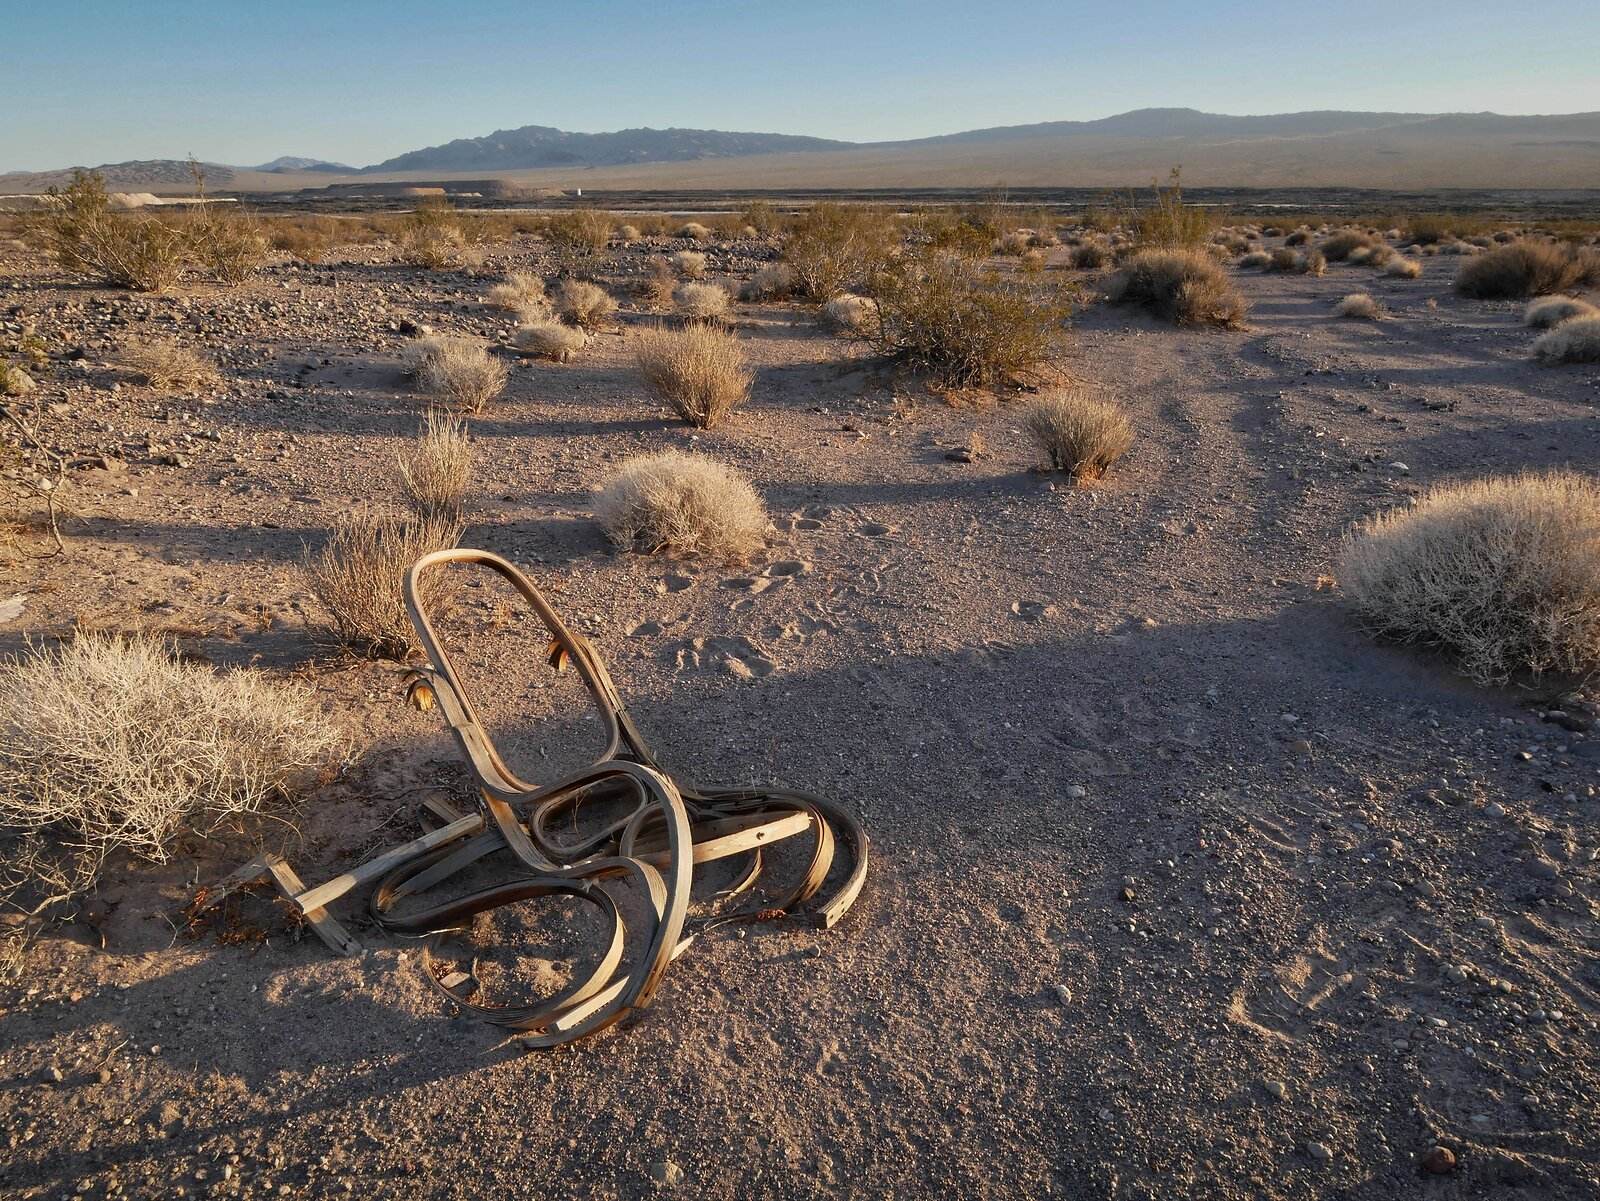 chair_desert_PanGX85_14mm_2018.jpg